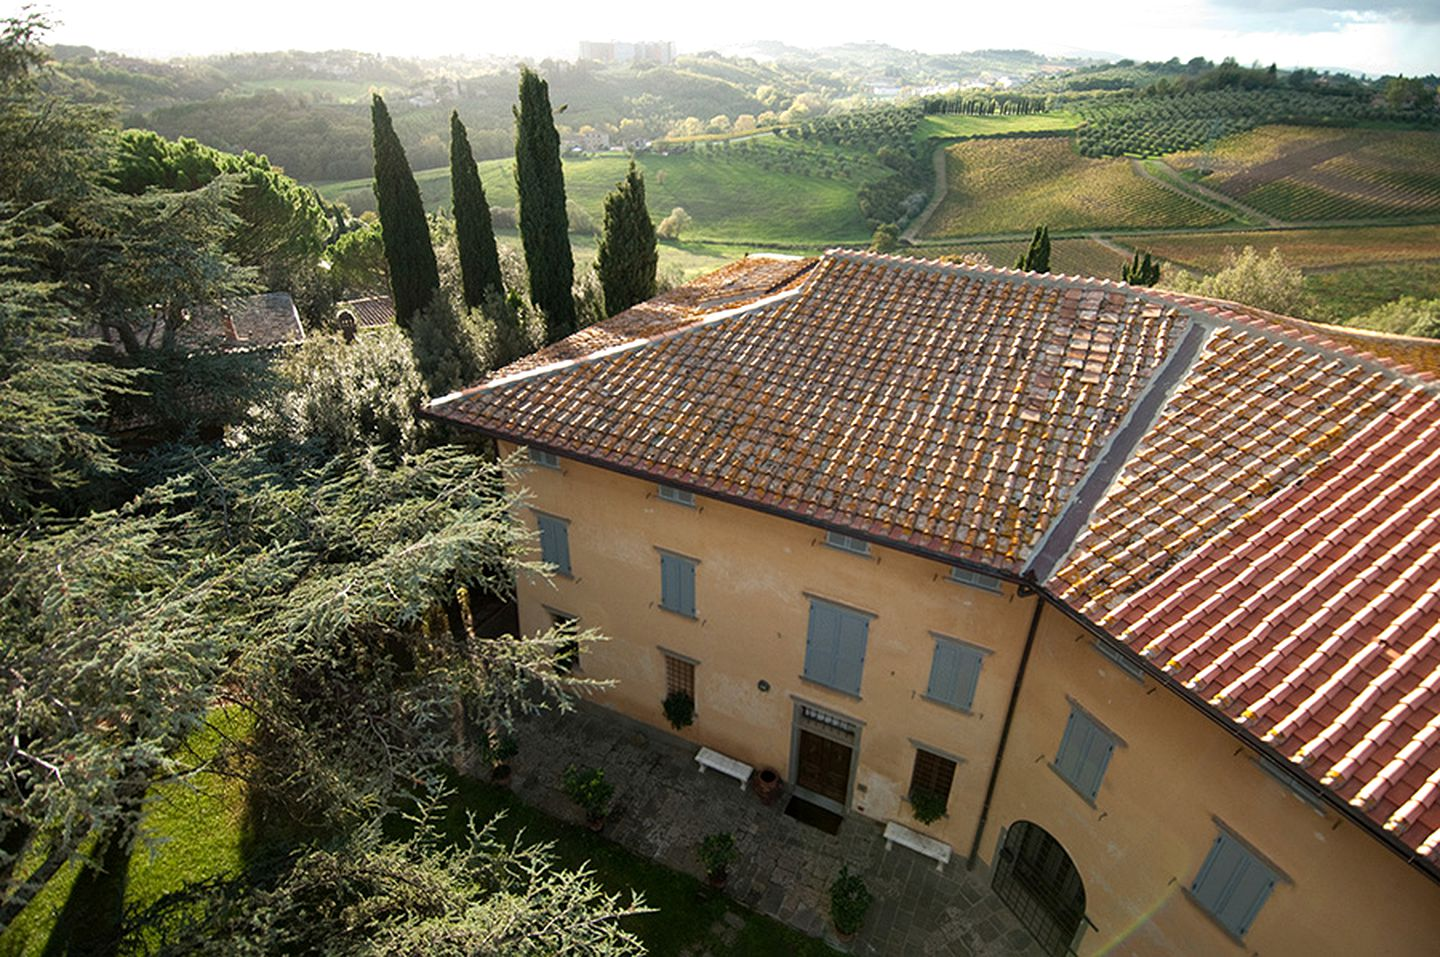 Villas Near Siena Italy luxurious villa rental with a private pool near siena, tuscany